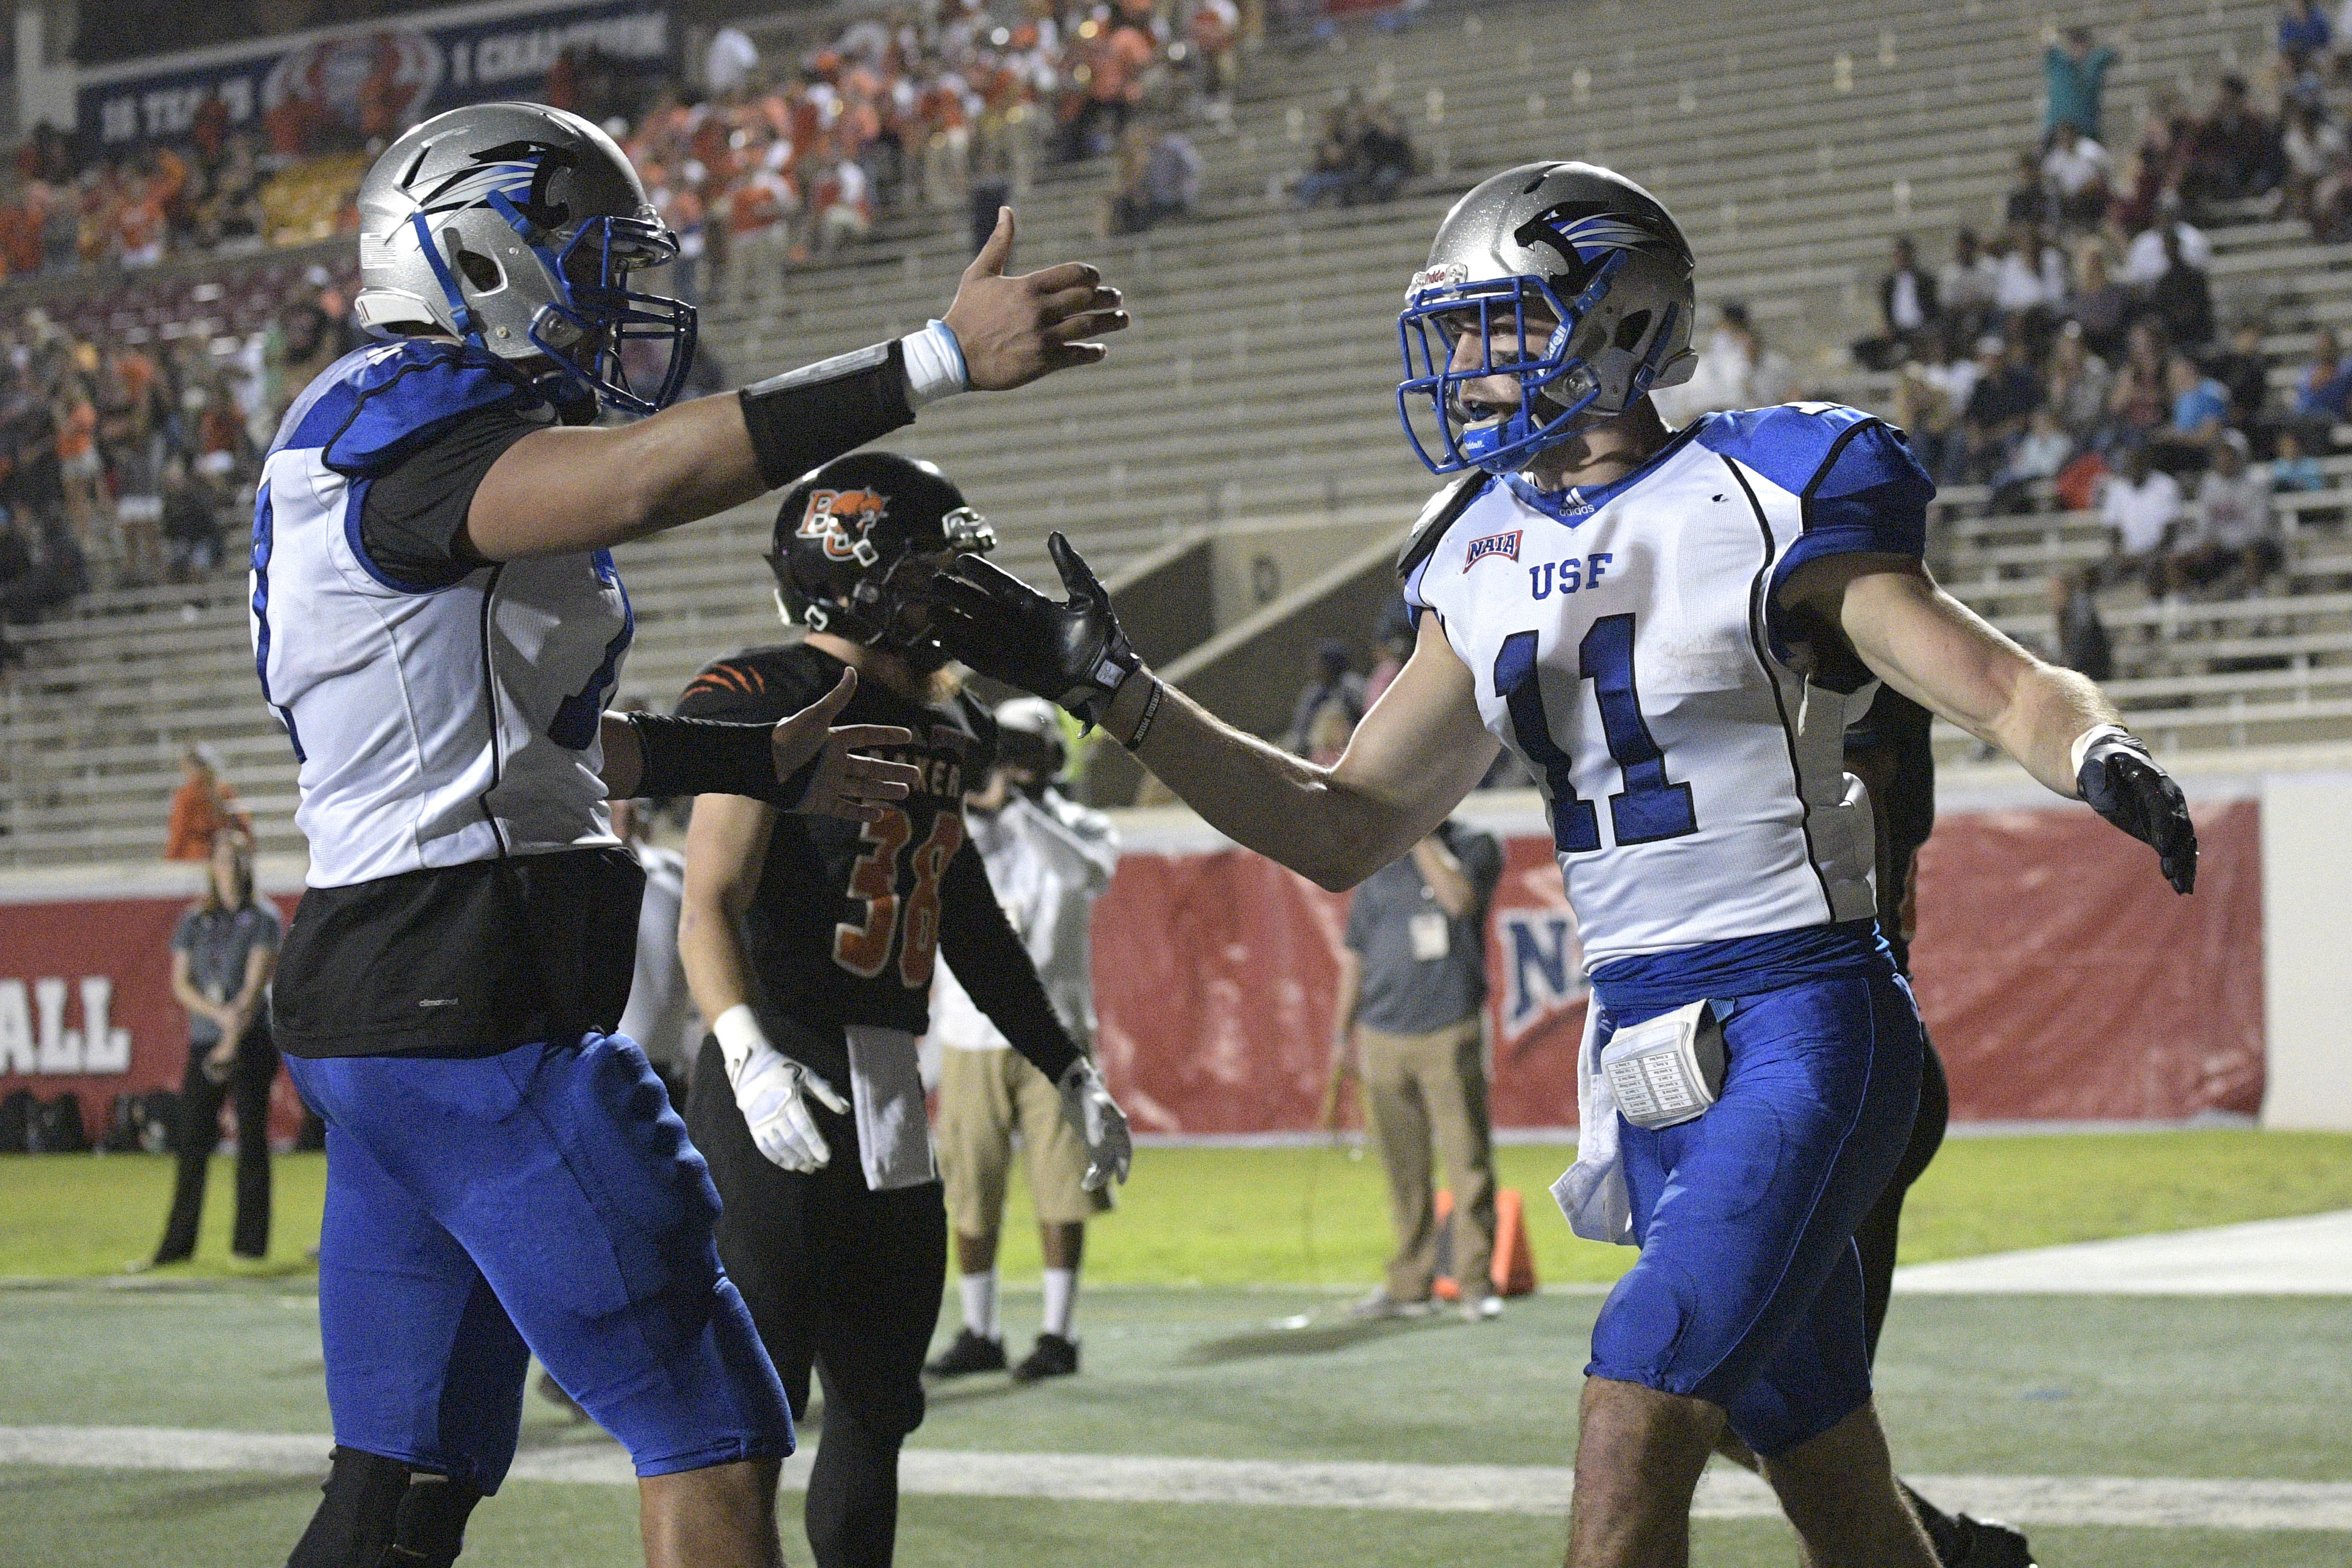 Saint Francis receiver Seth Coate (11) is congratulated by offensive lineman Jaylen Gamble, left, after catching a 5-yard pass for a touchdown during the first half of the NAIA championship football game against Baker in Daytona Beach, Fla., Saturday, Dec